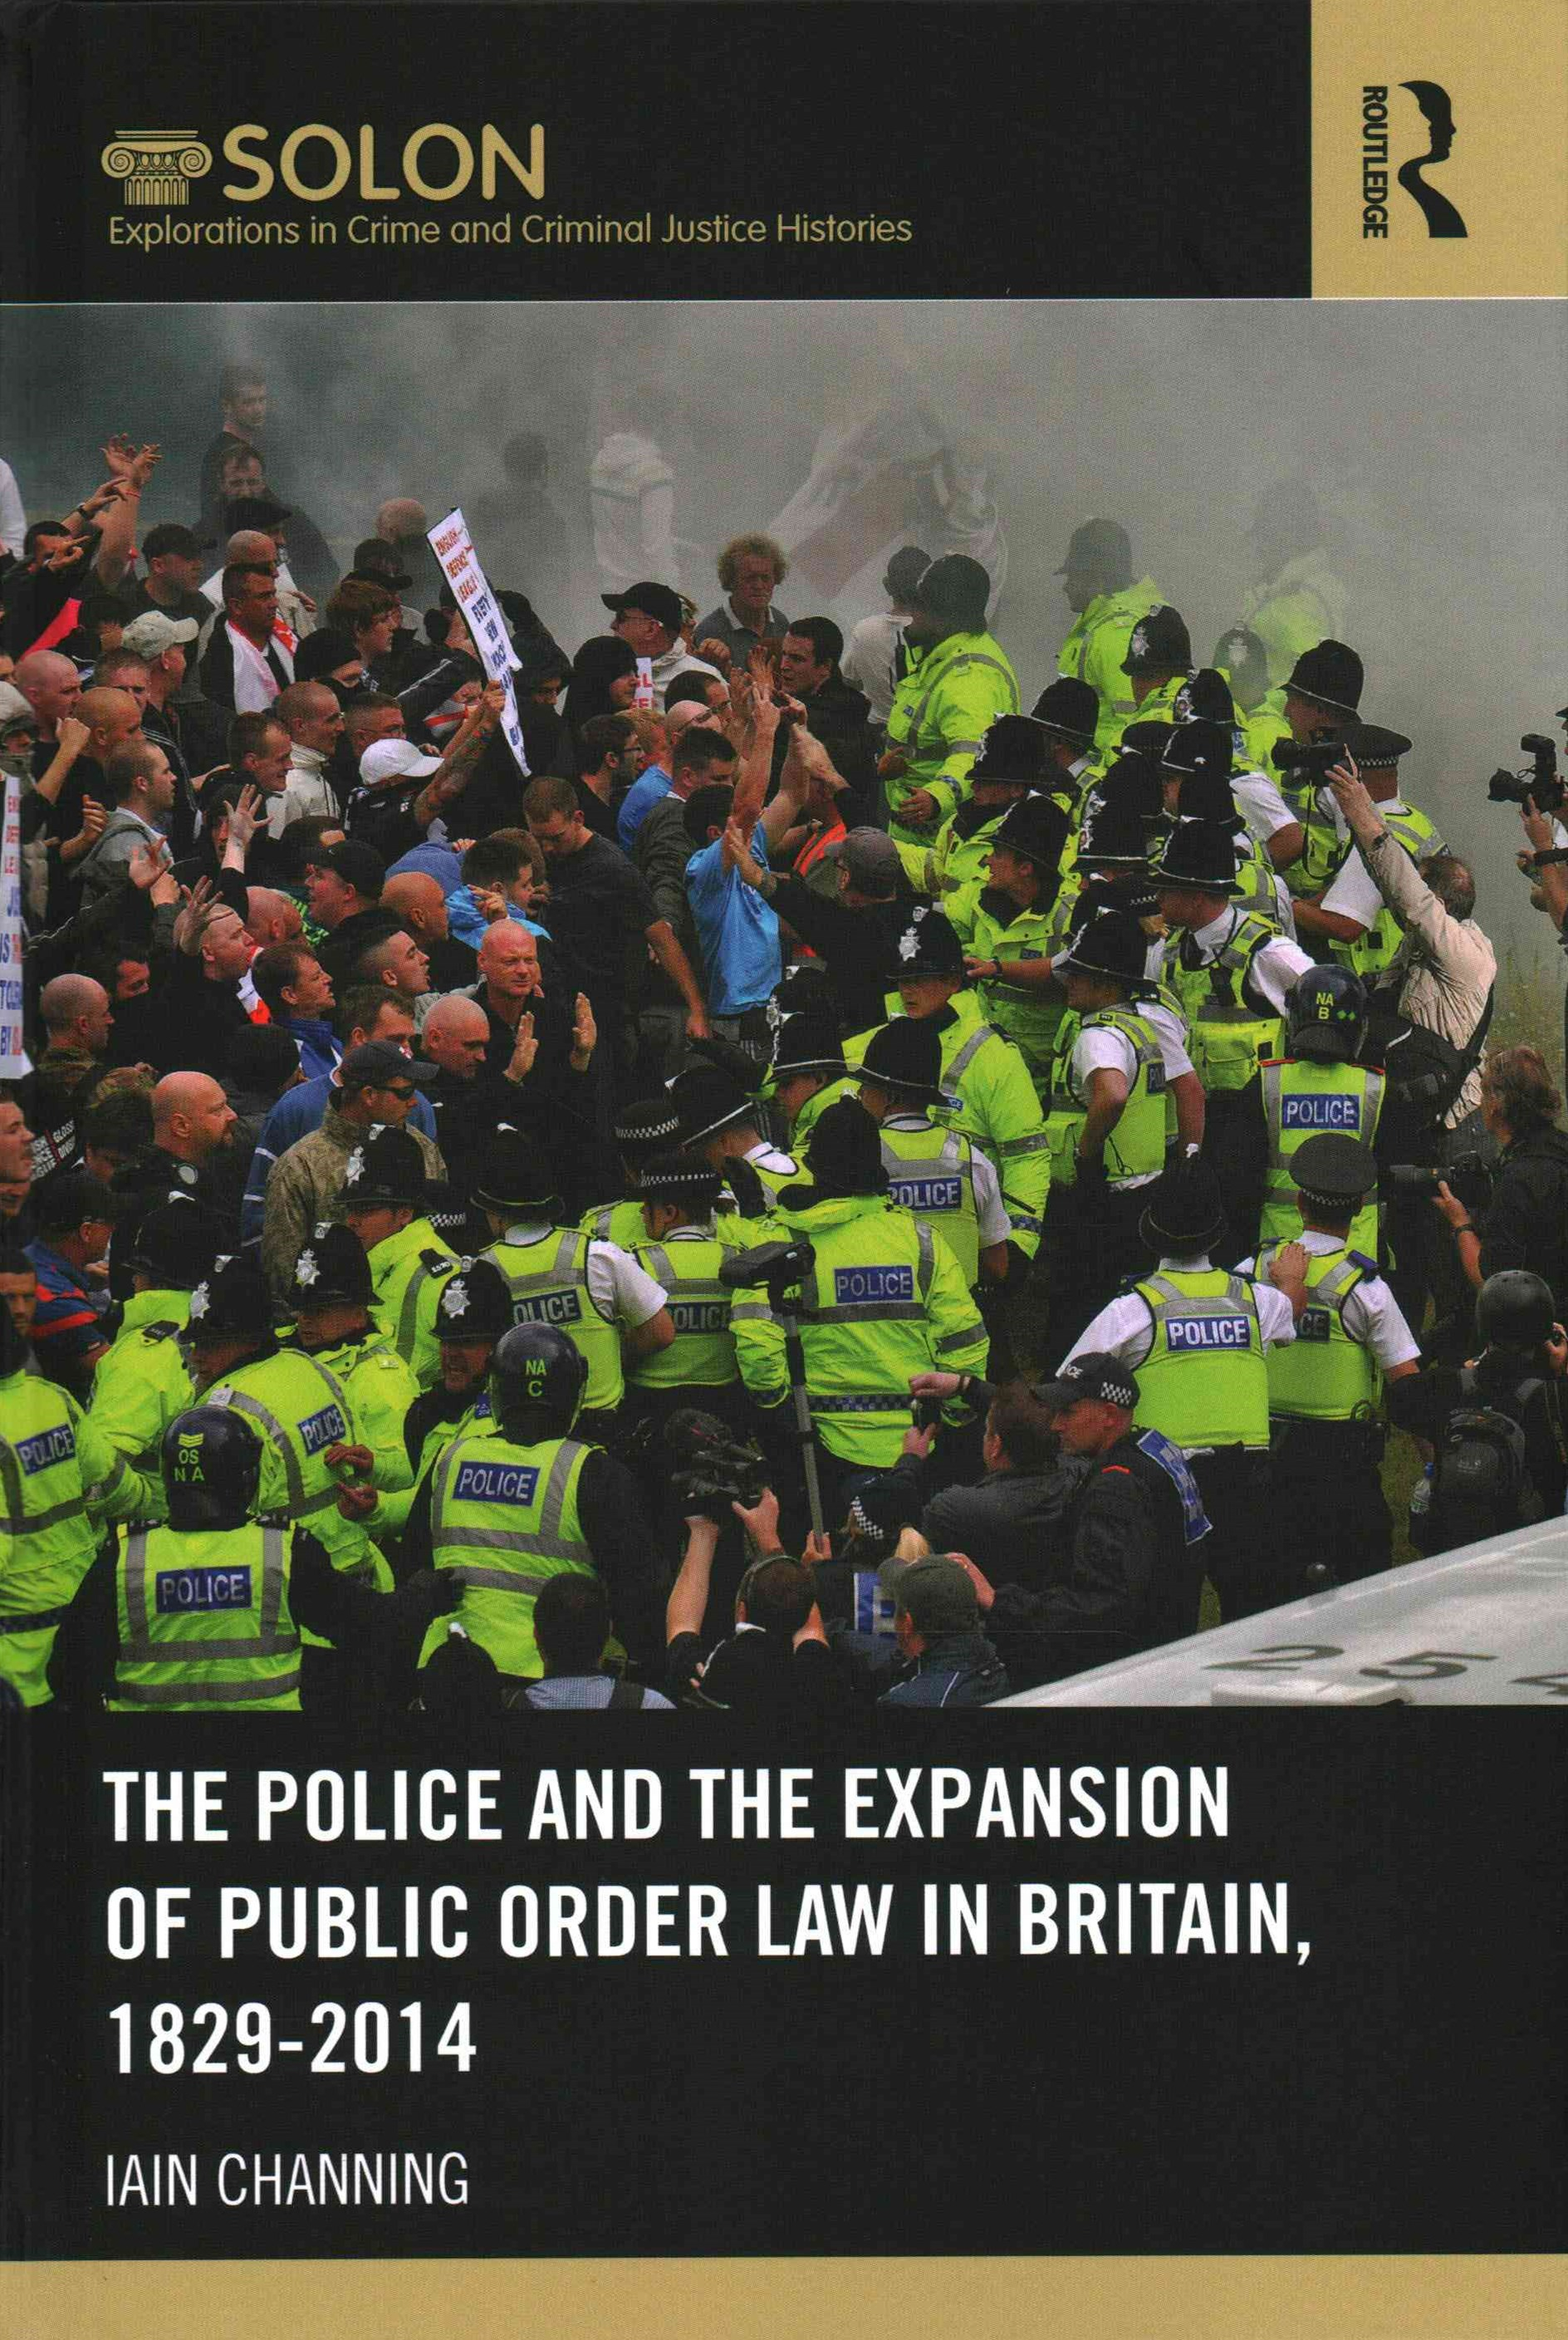 Police and the Expansion of Public Order Law in Britain, 1829-2014